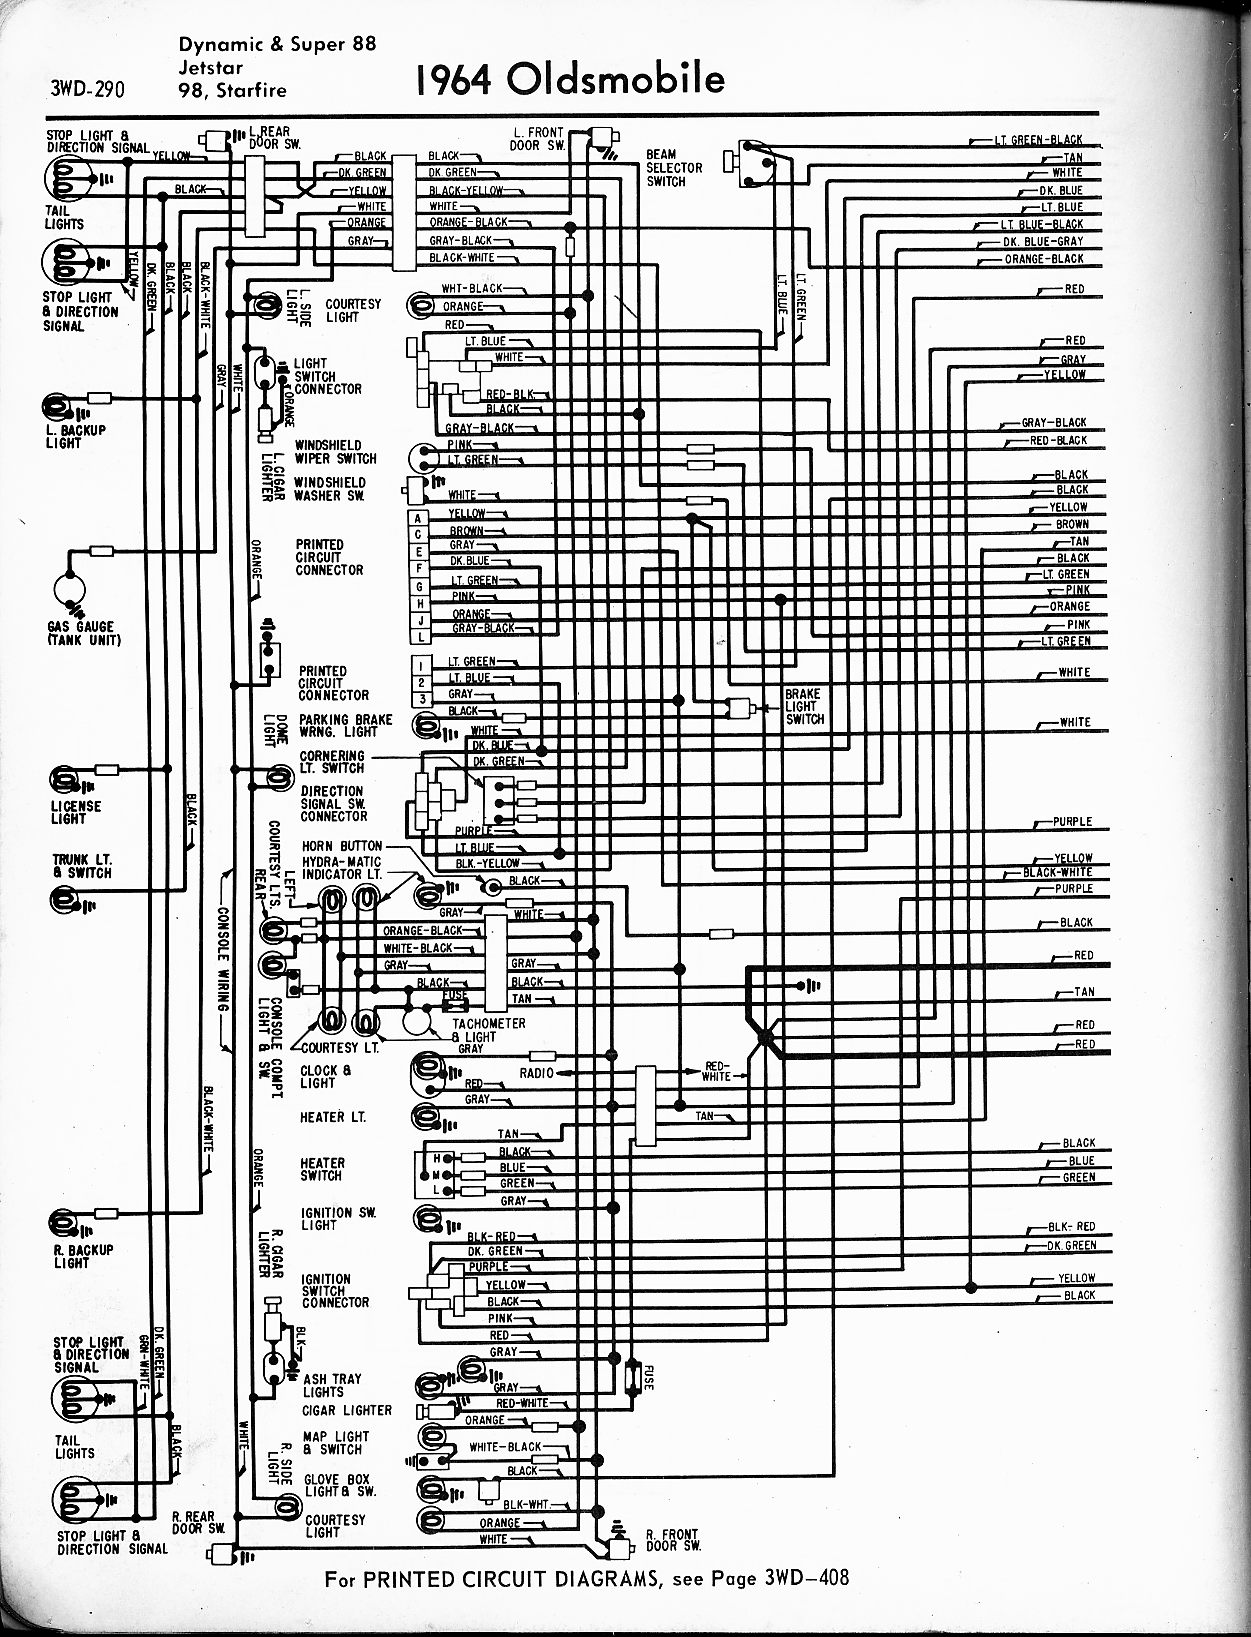 Swell Oldsmobile Wiring Diagrams The Old Car Manual Project Wiring Cloud Ymoonsalvmohammedshrineorg